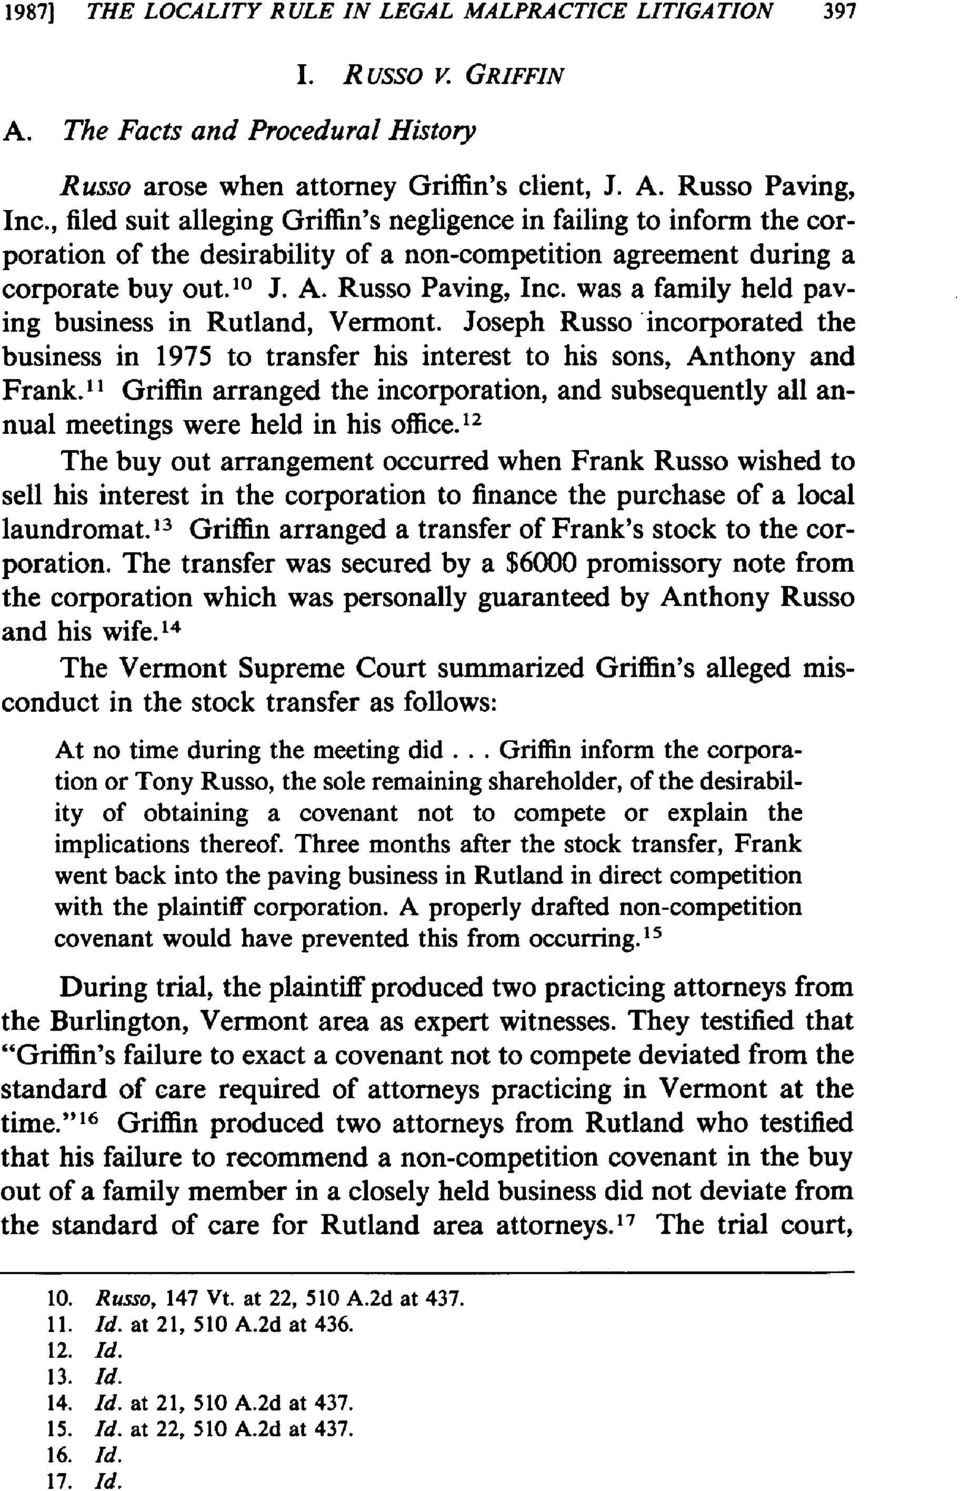 was a family held paving business in Rutland, Vermont. Joseph Russo incorporated the business in 1975 to transfer his interest to his sons, Anthony and Frank.